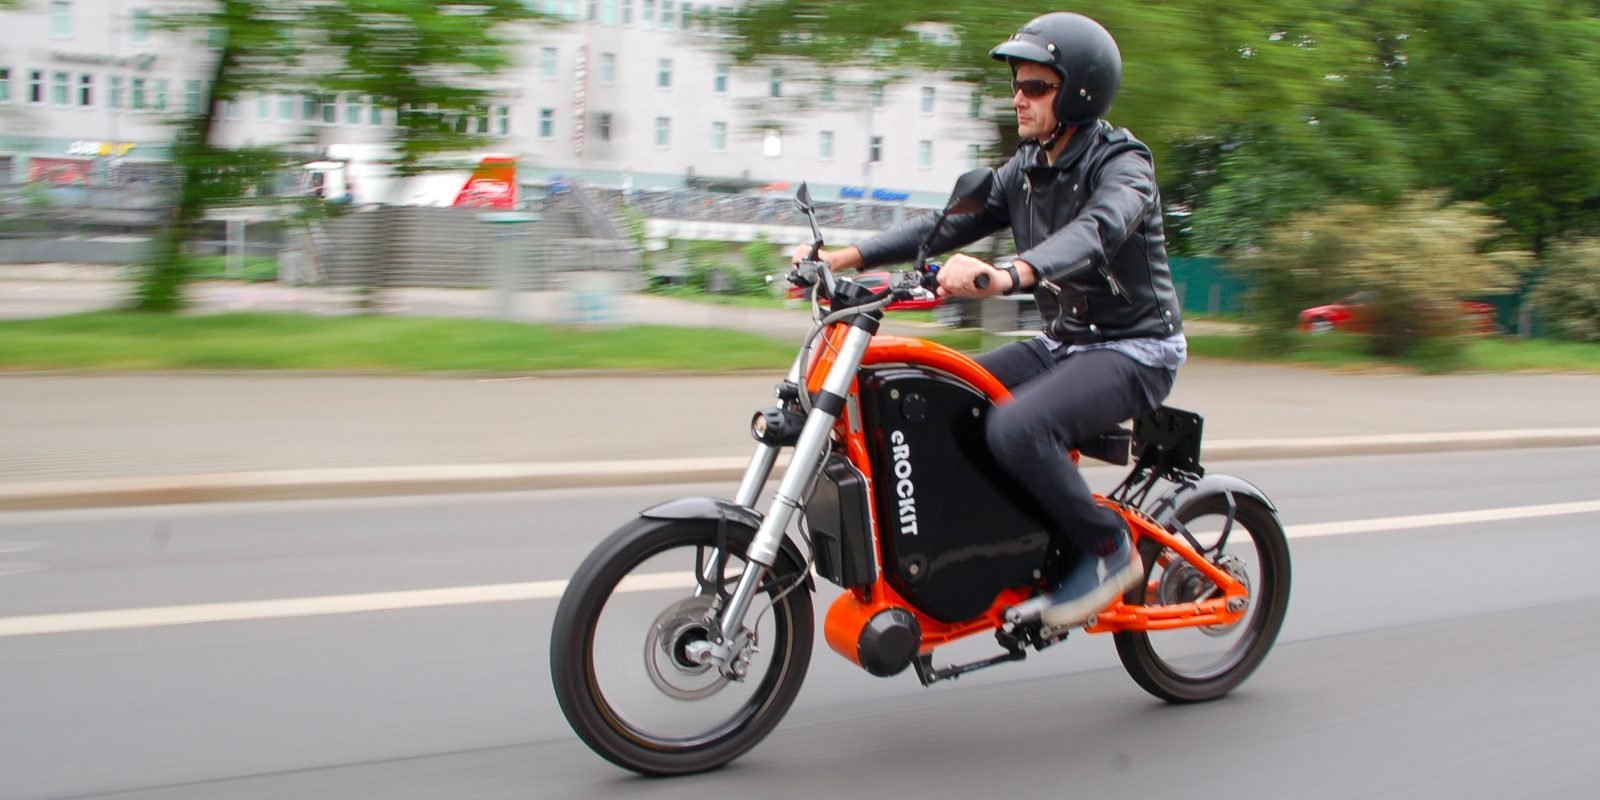 This eROCKIT 50 mph (80 km/h) electric motorcycle has pedals… but why?